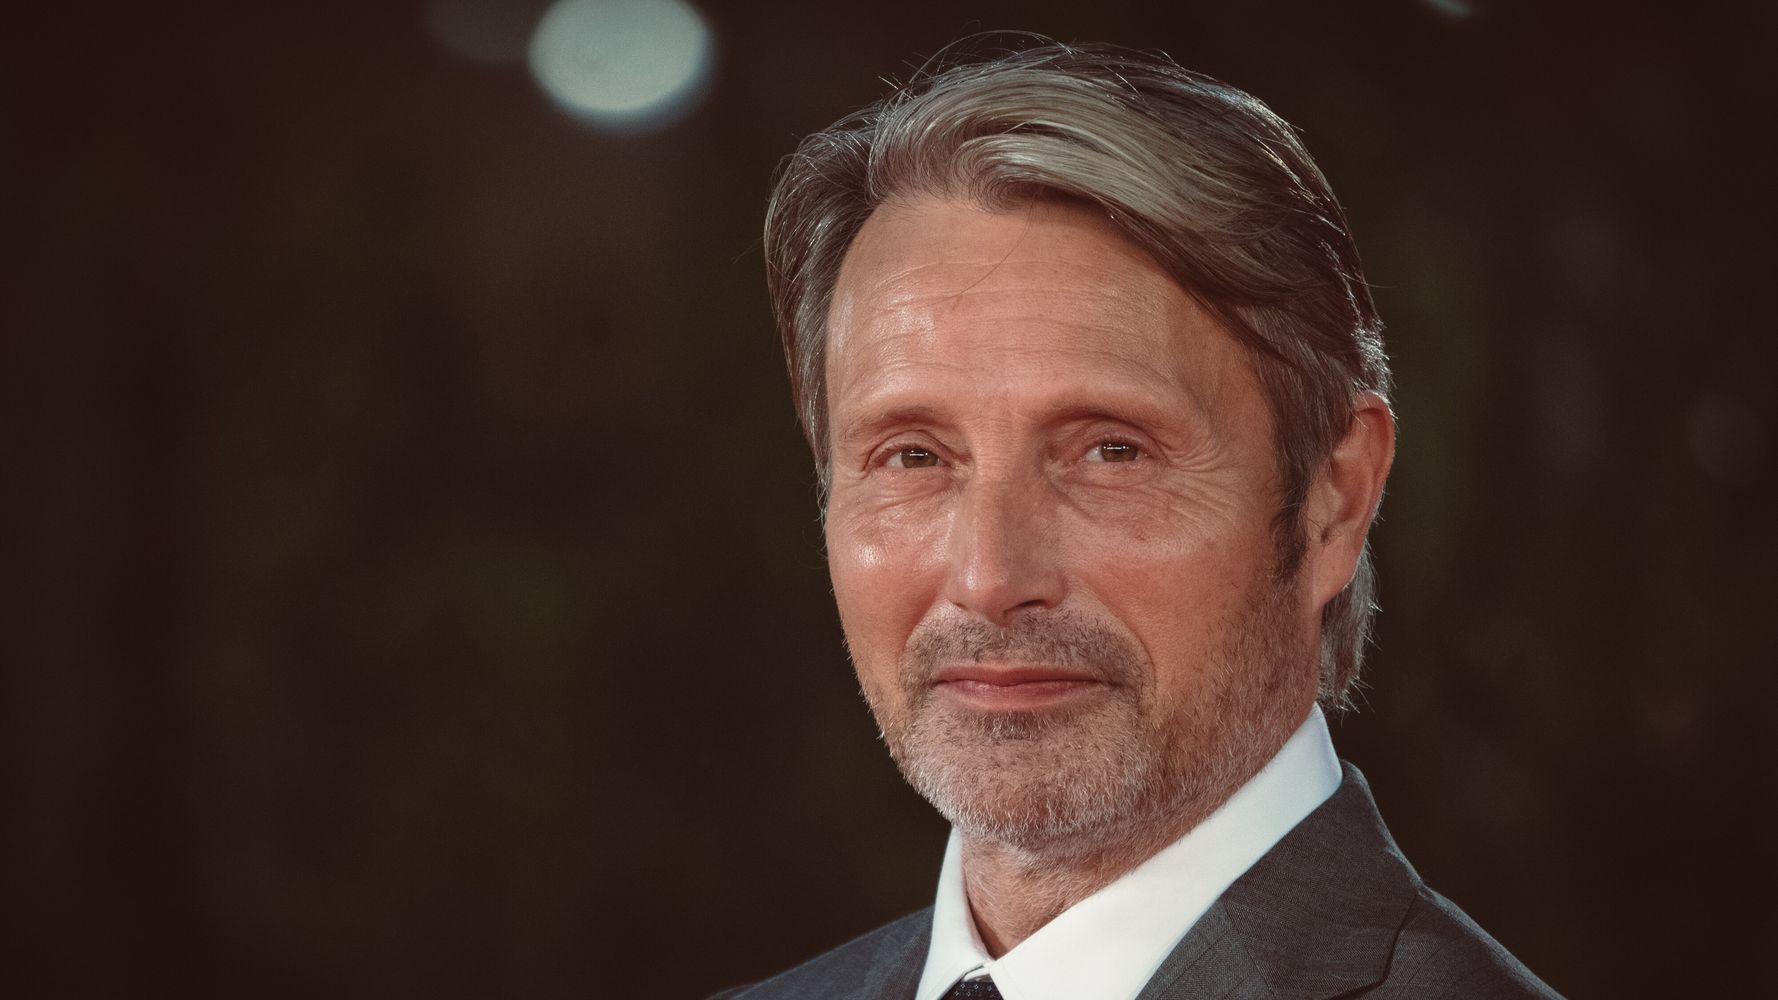 Mads Mikkelsen On The 'Shocker' Of Replacing Johnny Depp In 'Fantastic Beasts'